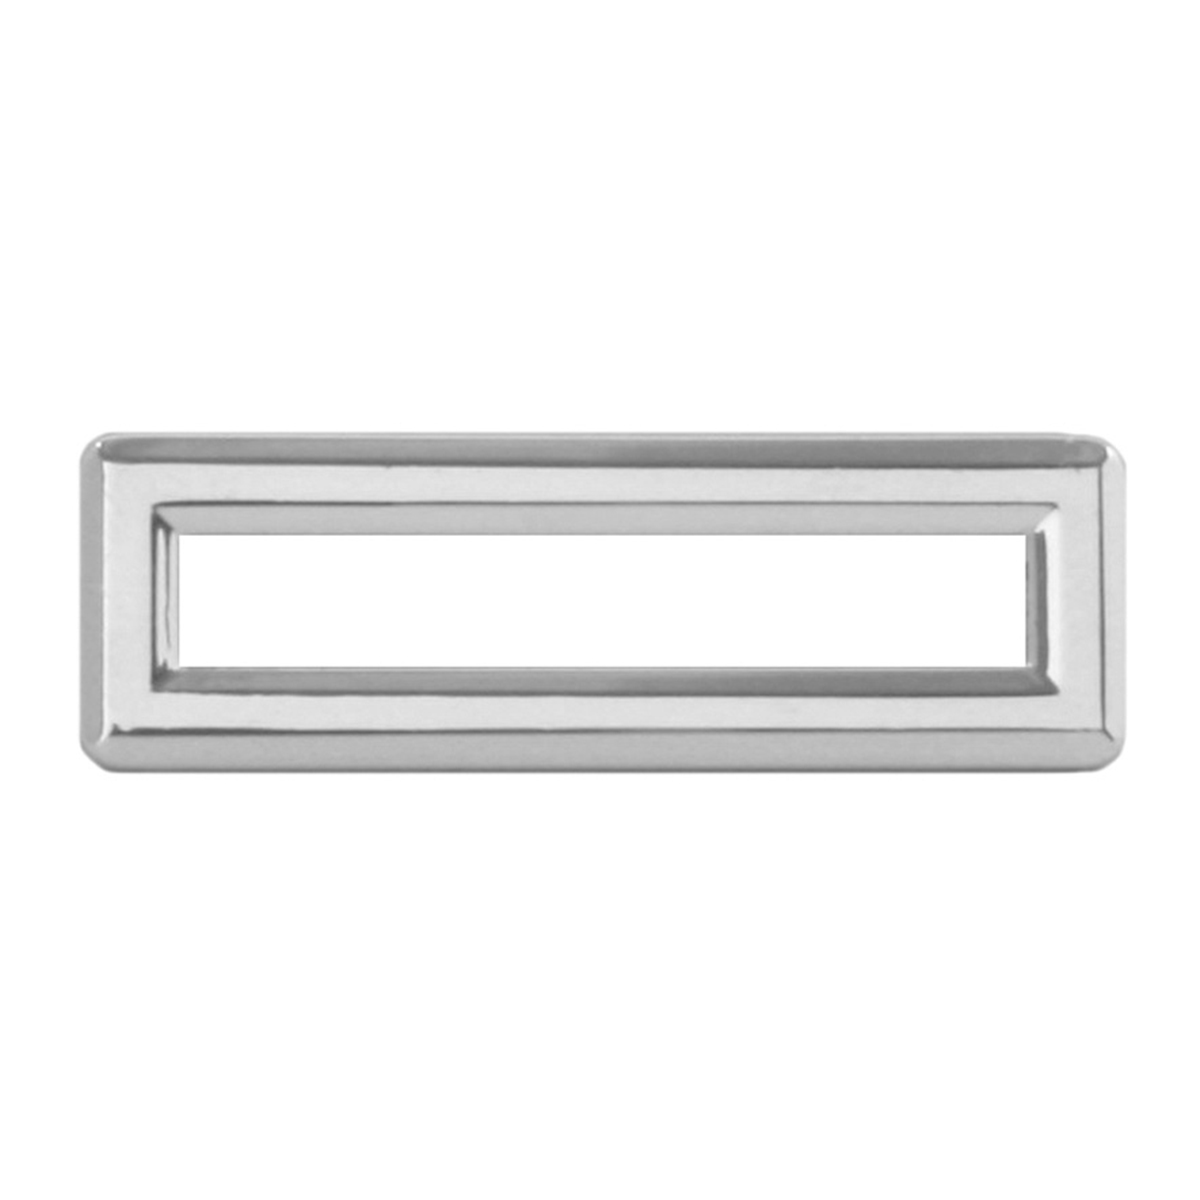 #68230 Switch Label Bezel Cover for Freightliner